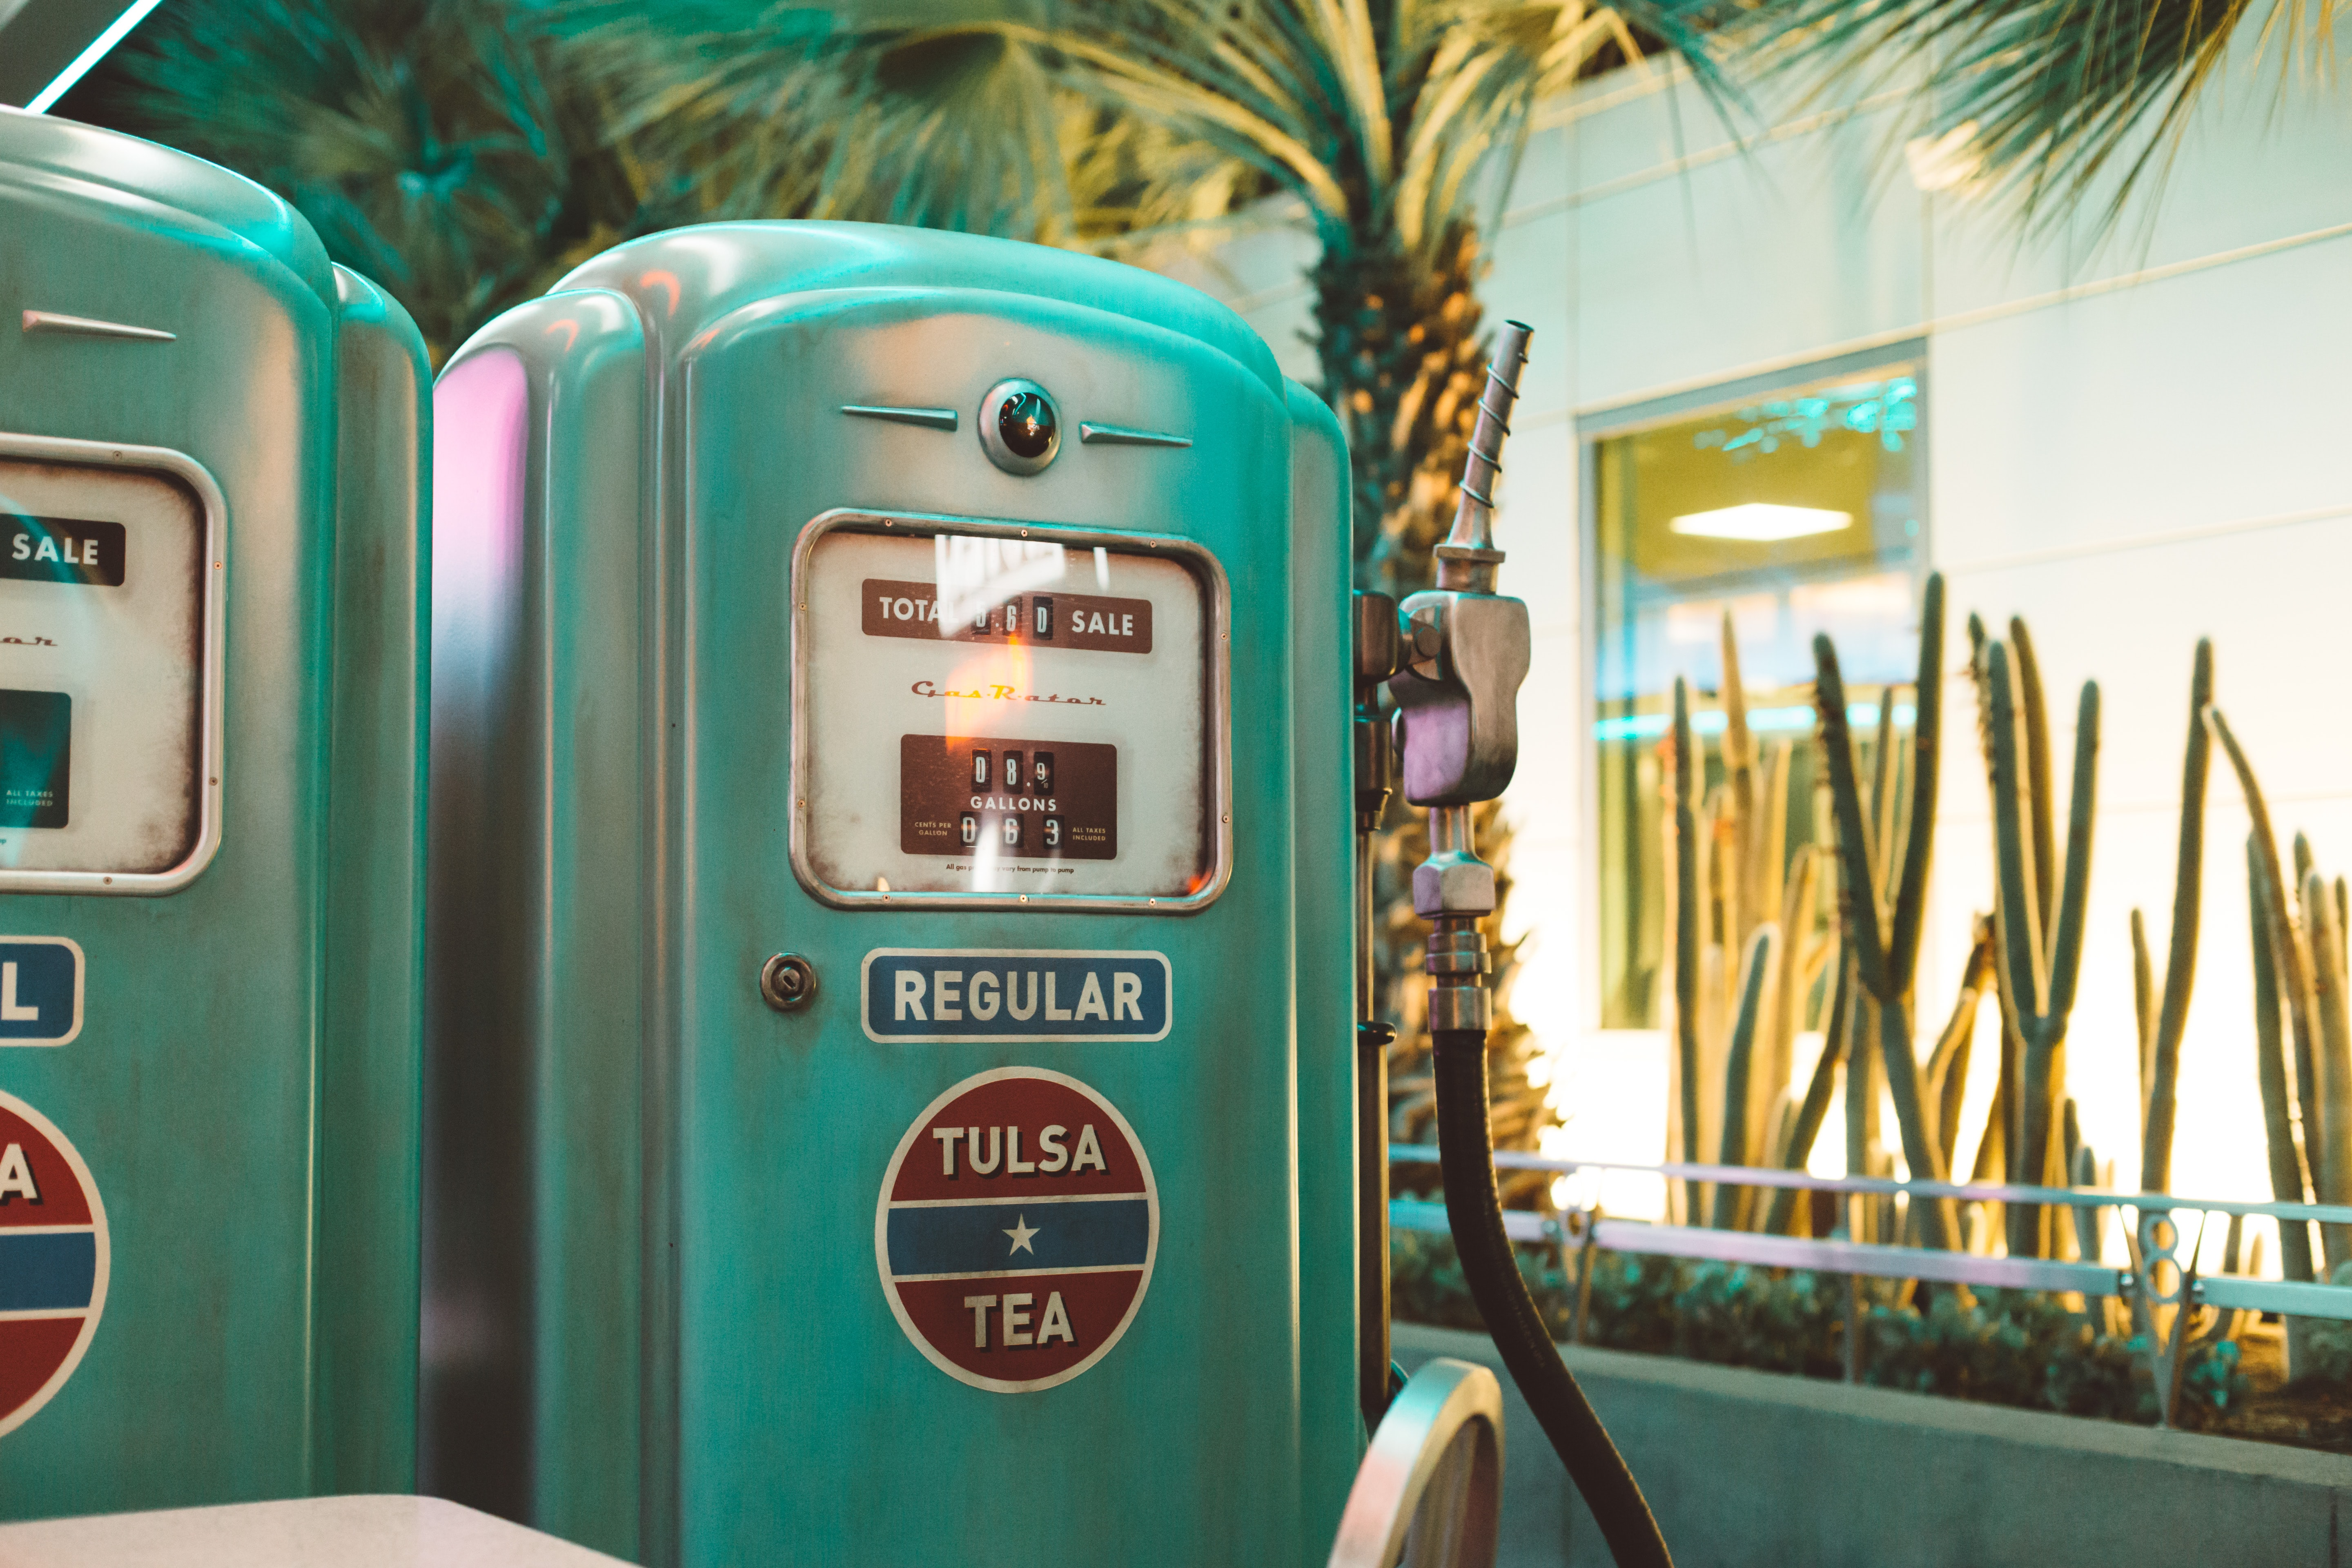 Retro turquoise gas pump at a beach town gas station